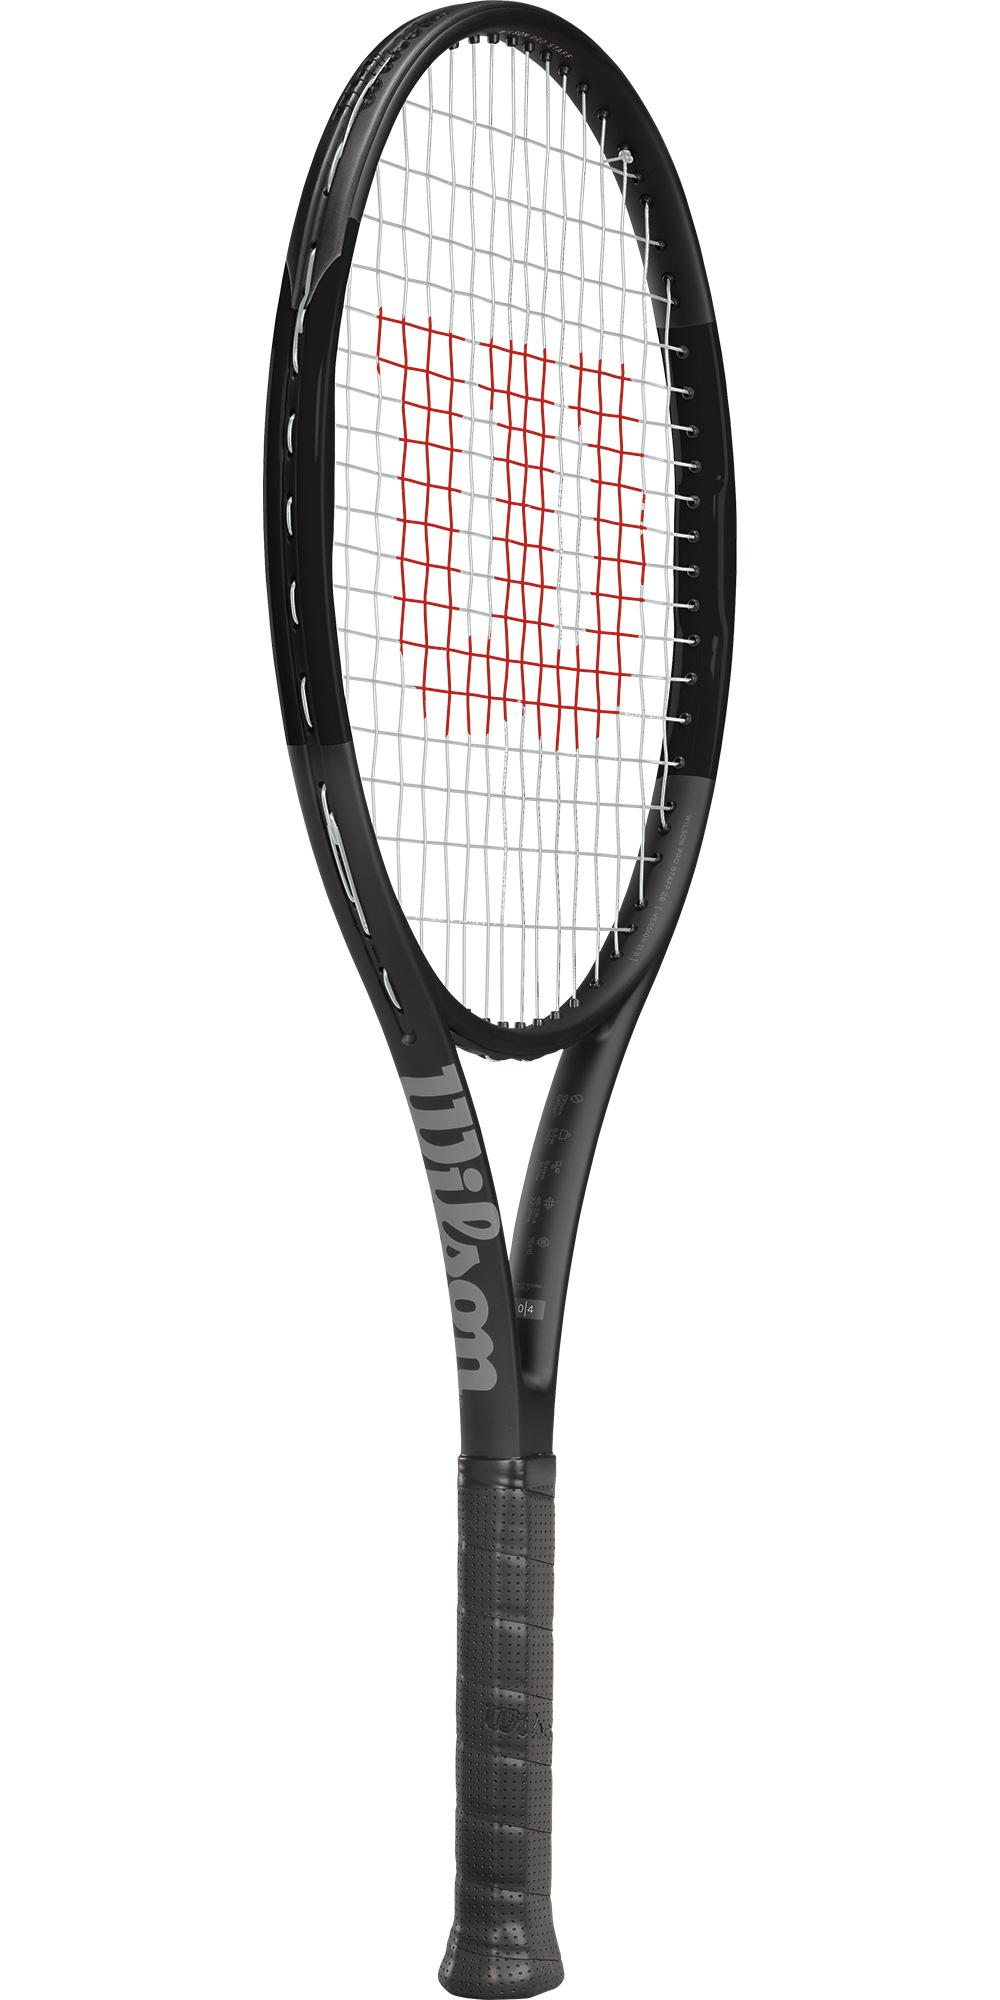 Wilson Pro Staff 26 Inch Junior Tennis Racket - Tennisnuts.com | 1000 x 2000 jpeg 109kB